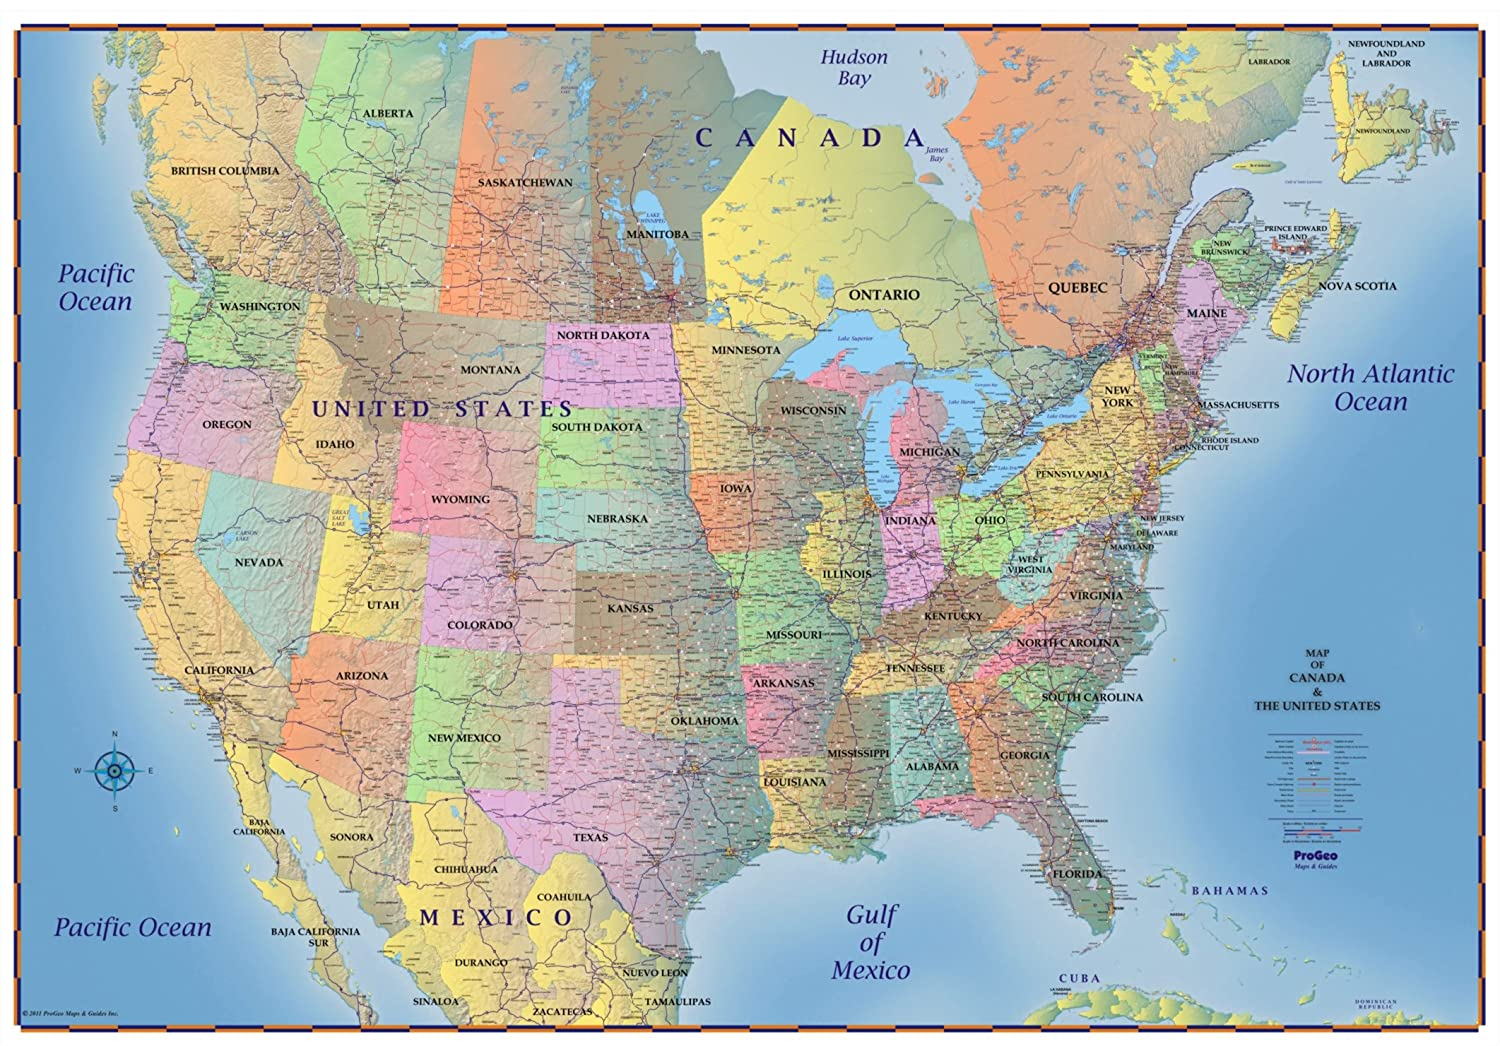 ProGeo Maps Trucker's Wall Map of Canada USA & Northern Mexico Laminated 69 x 48LAMINATED